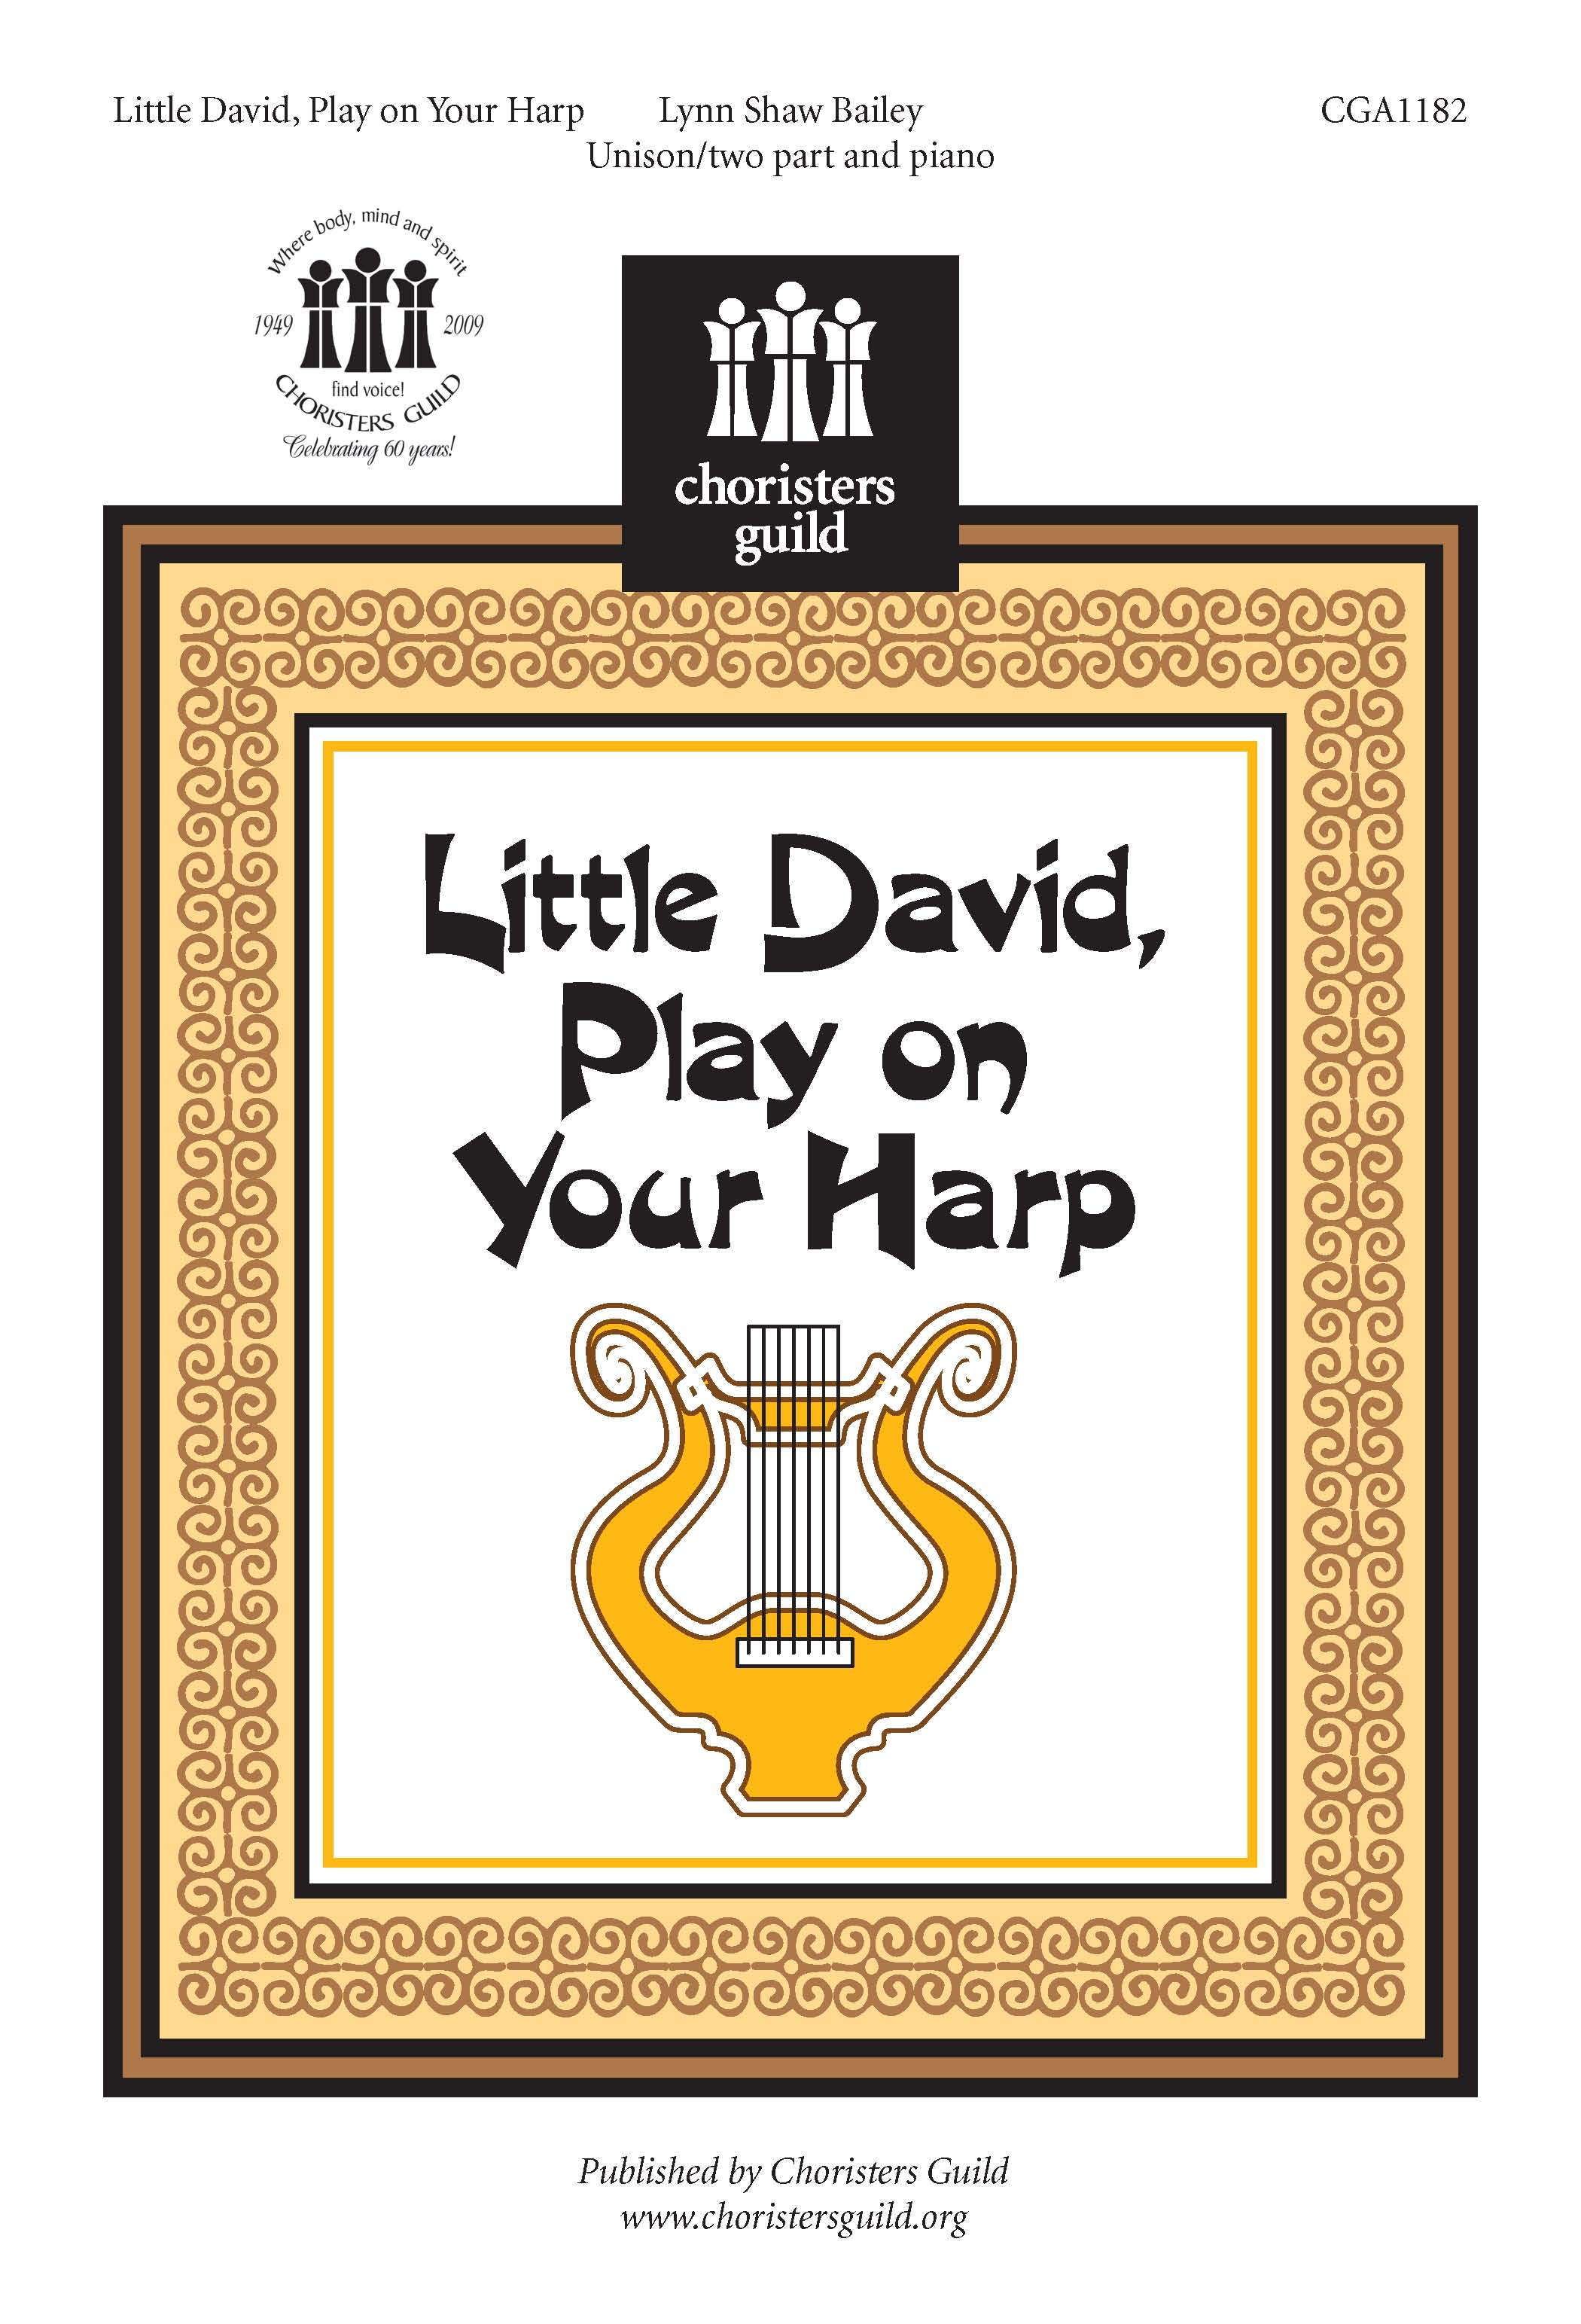 Little David, Play on Your Harp Accompaniment Track